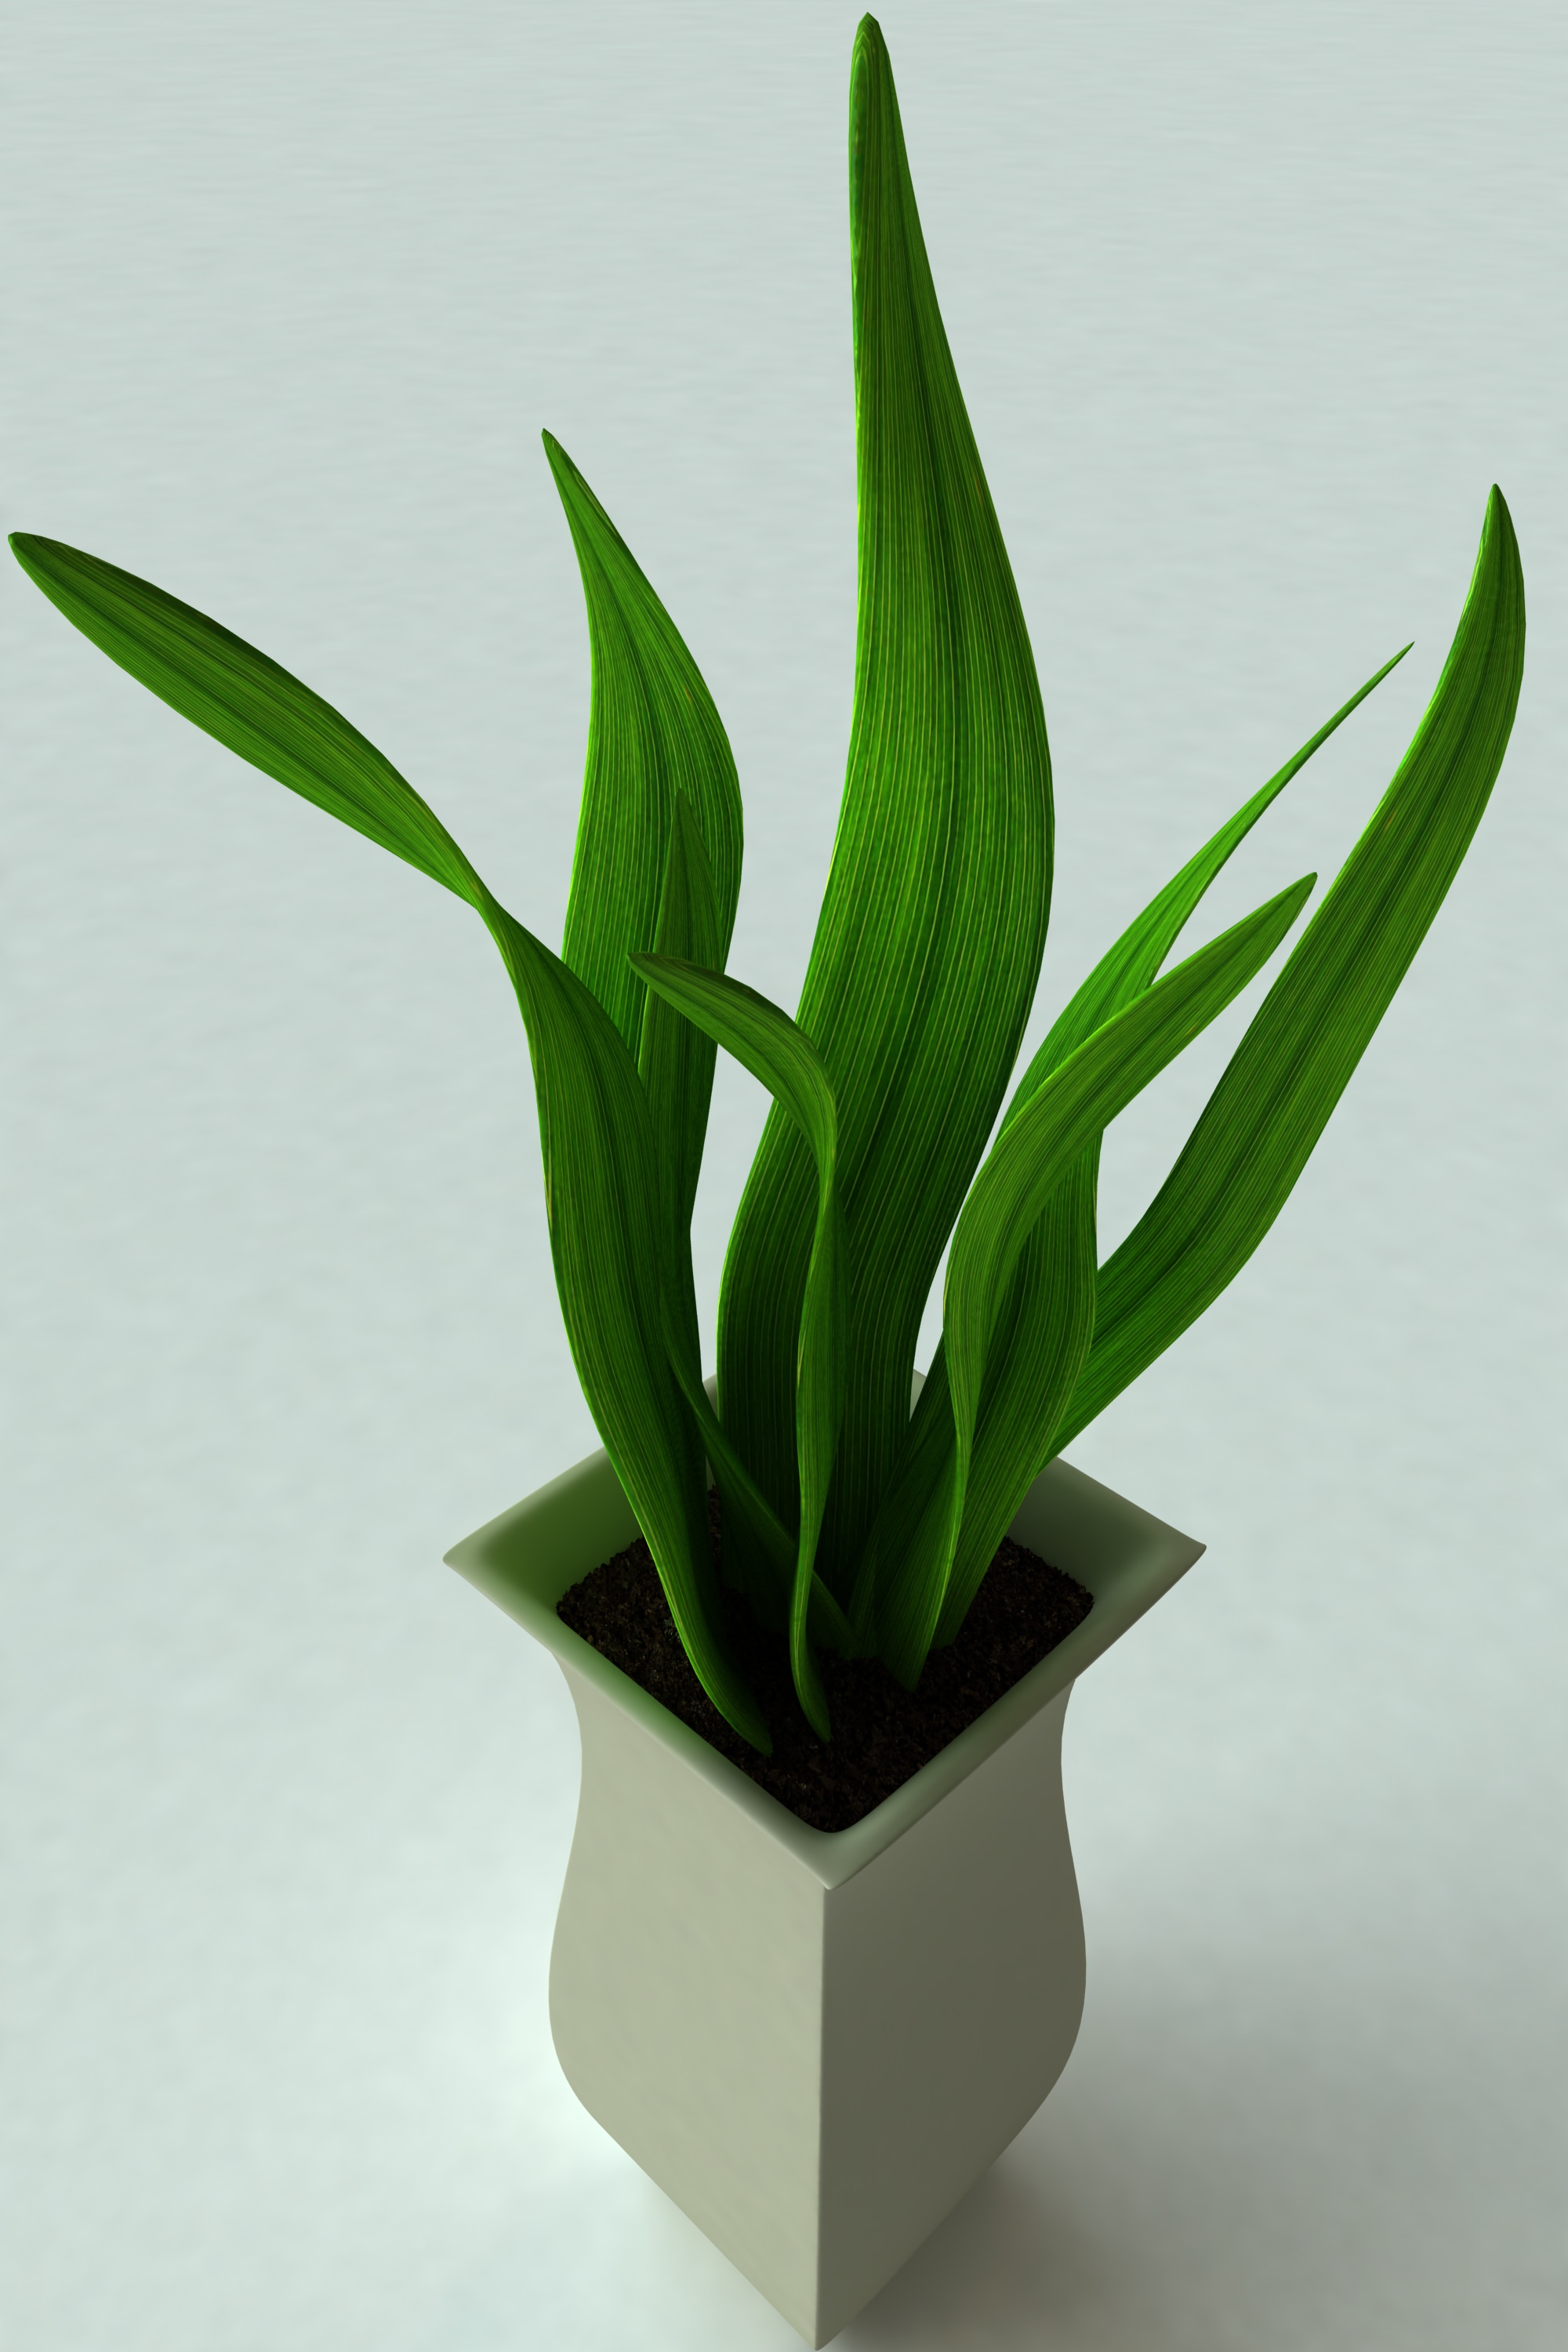 Potted Plants And The Necessary Spring Care: Potted Plant-2 3D Model MAX